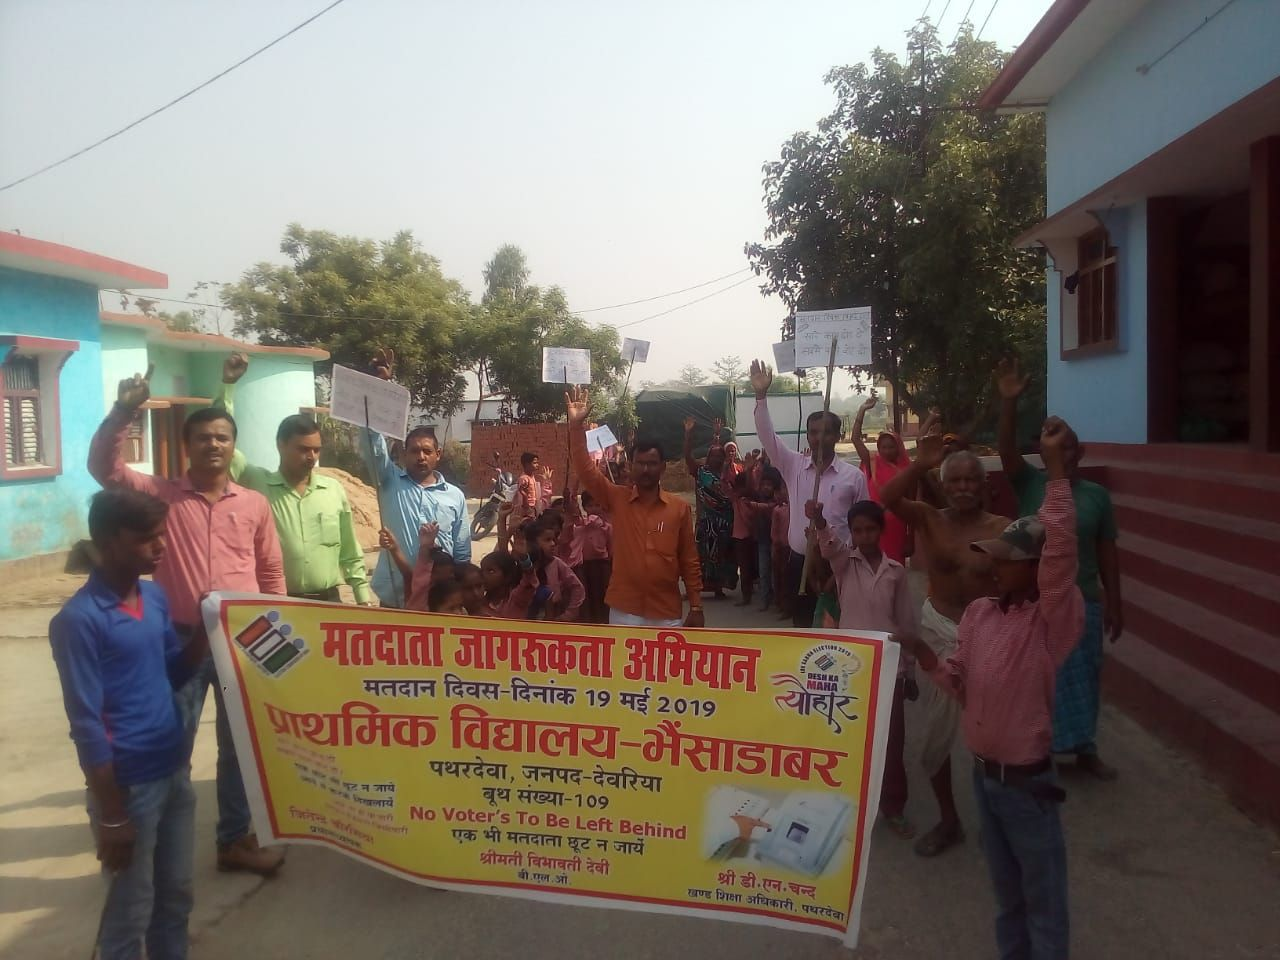 SVEEP DEORIA VOTER AWARENESS PROGRAM BHAISADABAR PATHARDEVA DEORIA (4).jpeg